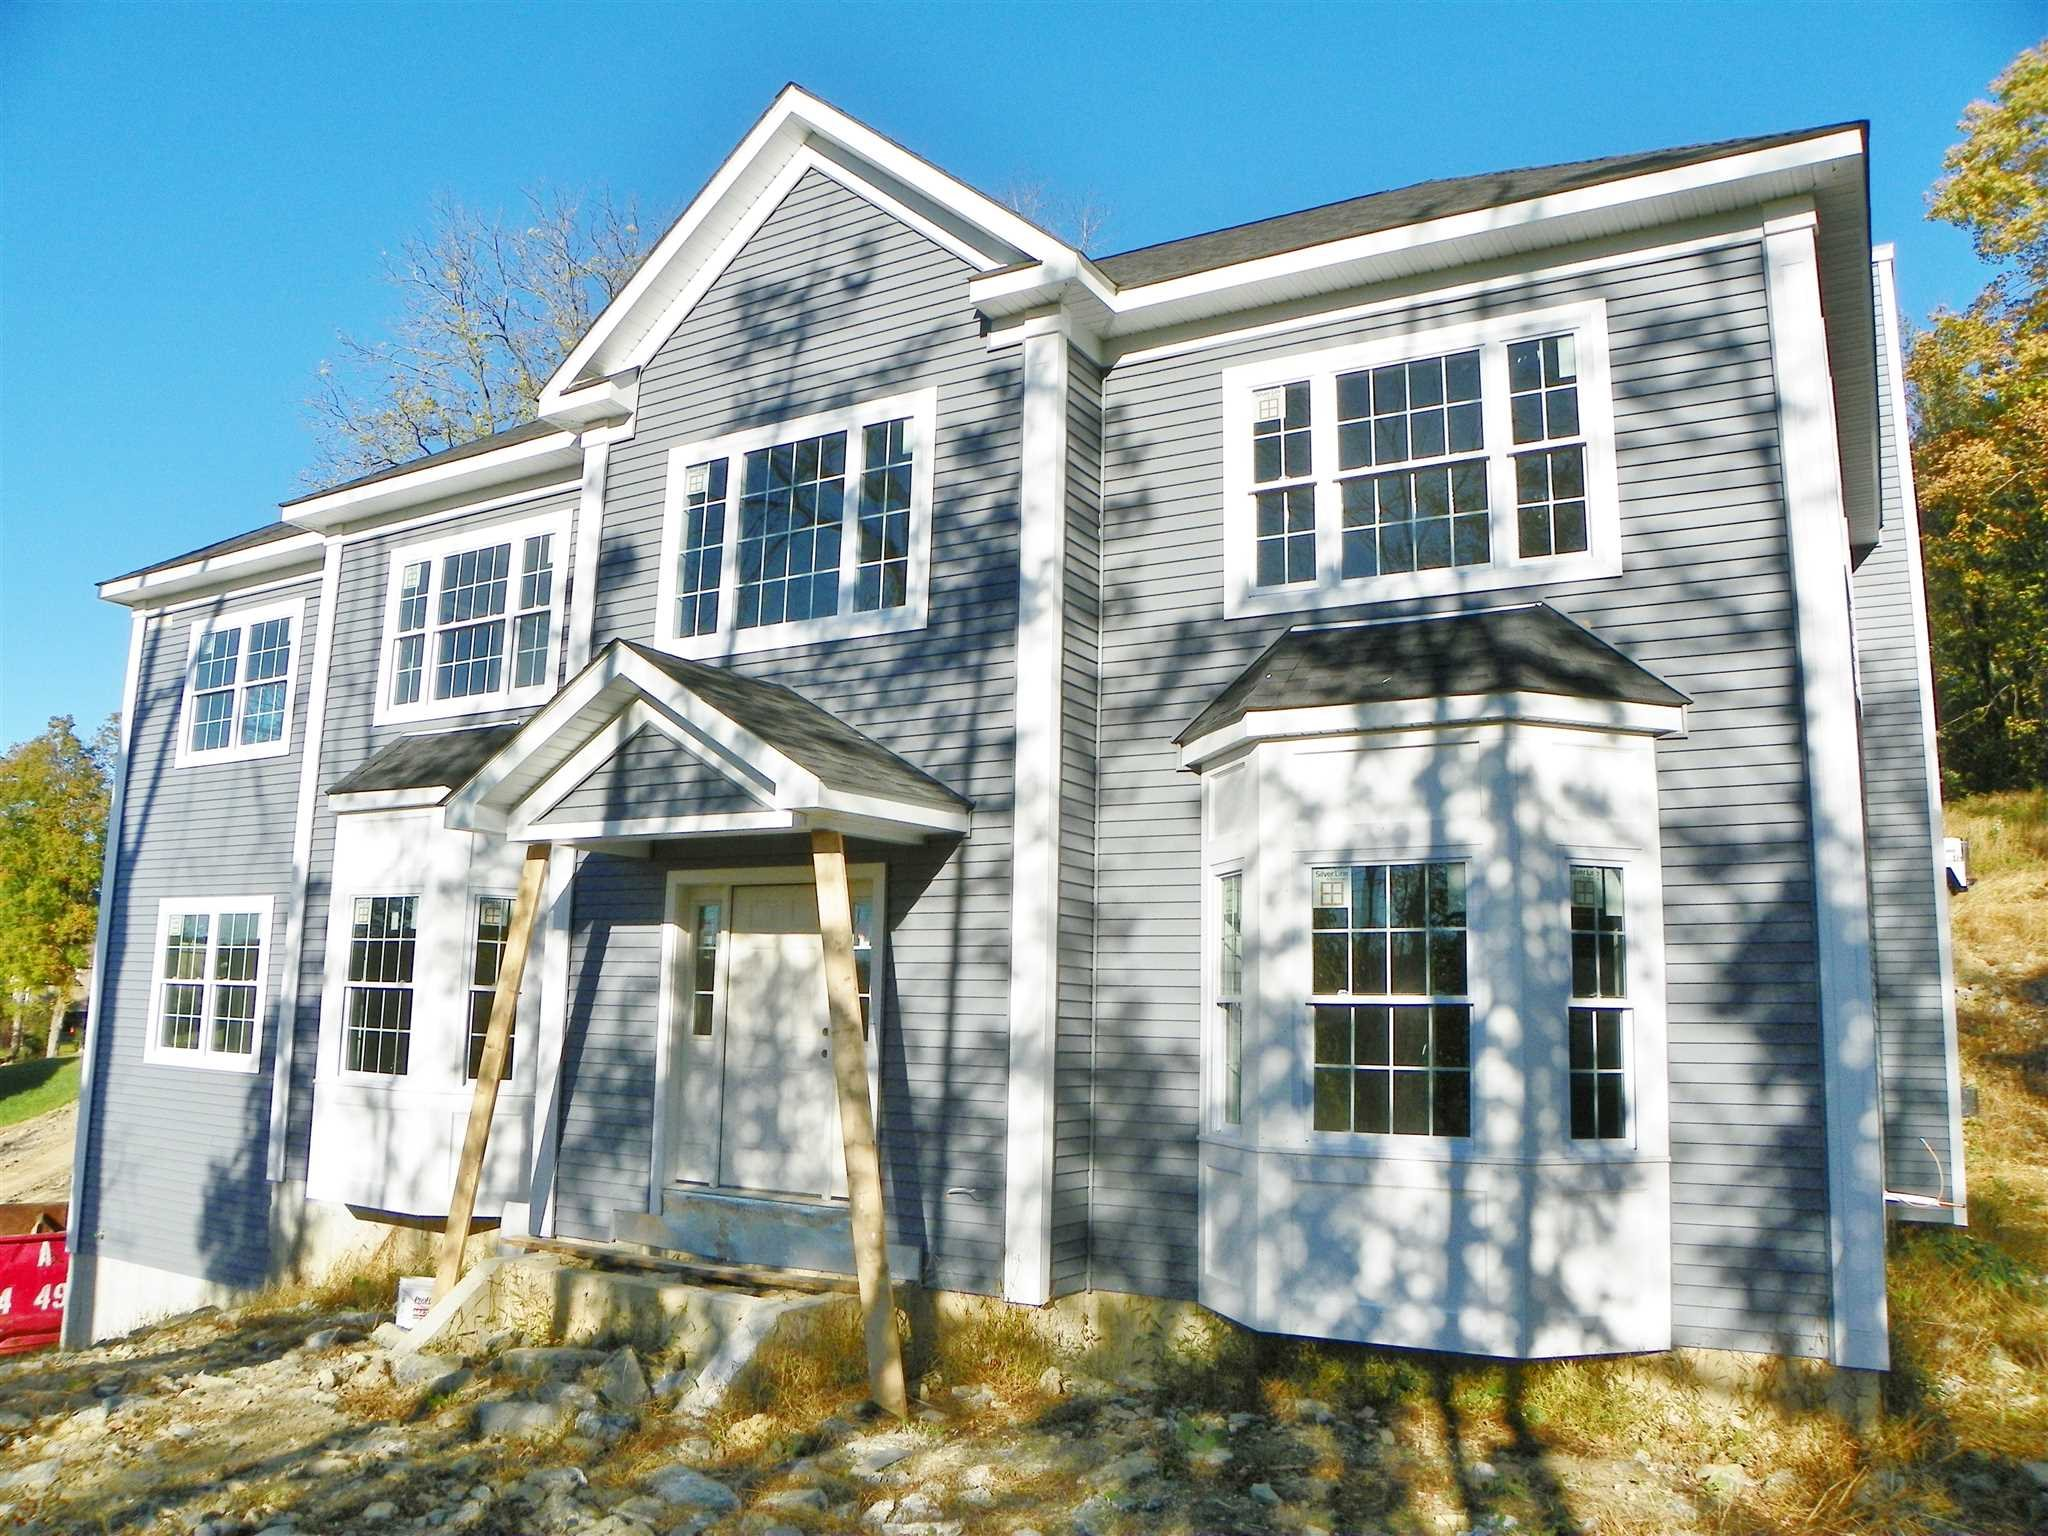 Single Family Home for Sale at 38 ROUNDHILL Road 38 ROUNDHILL Road East Fishkill, New York 12533 United States